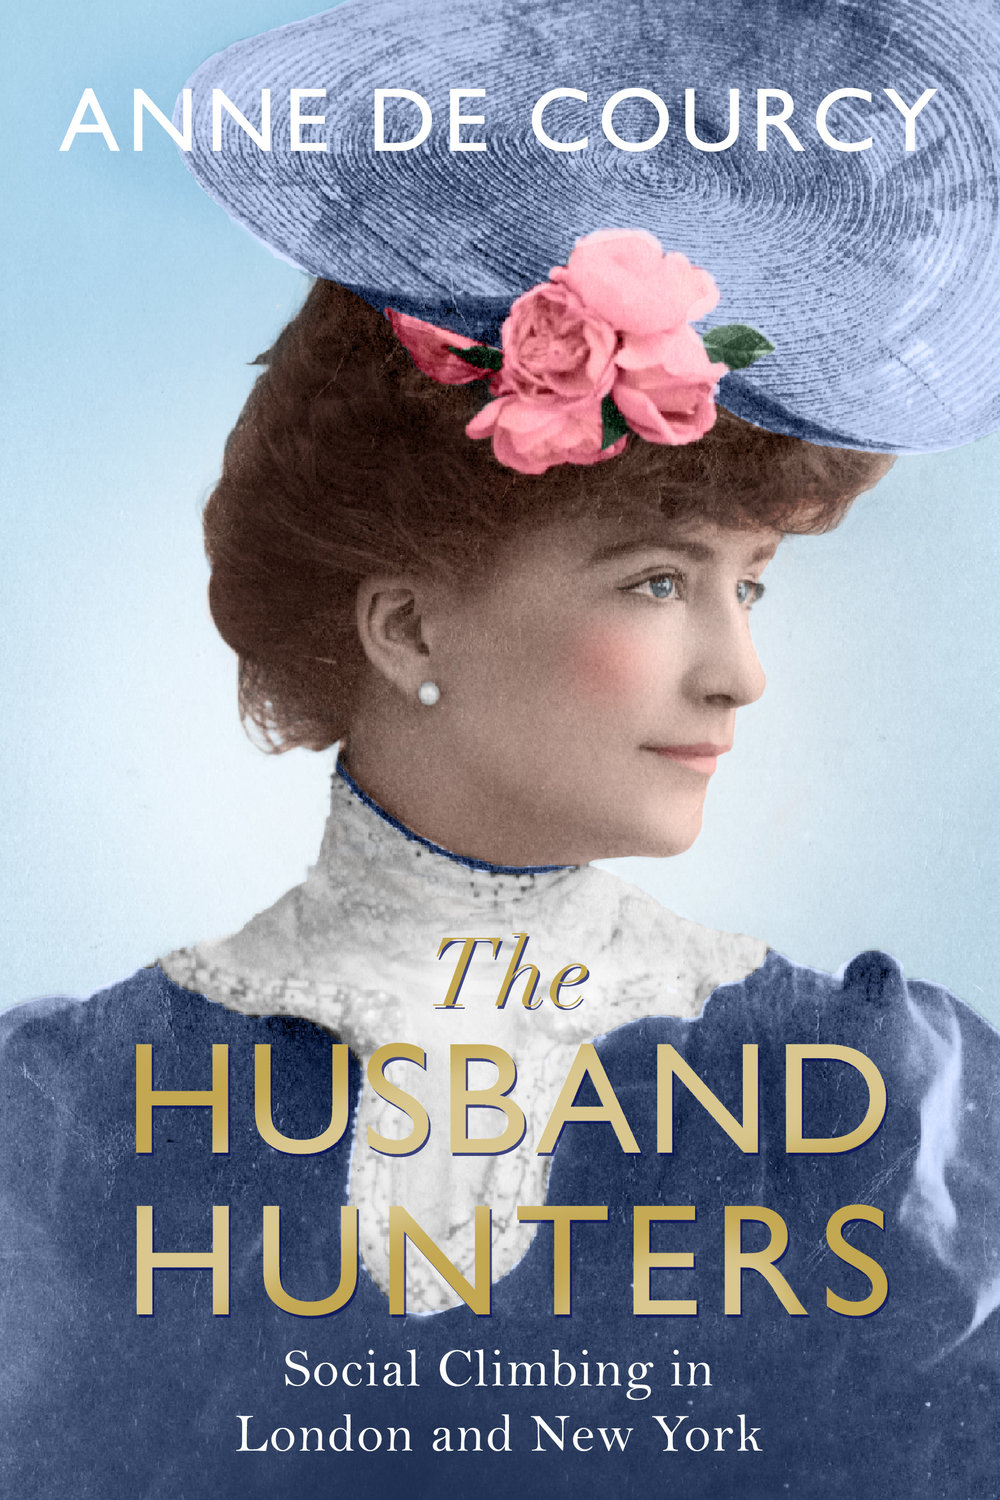 HUSBAND HUNTERS The - DE COURCY Anne - UK pbk.jpeg